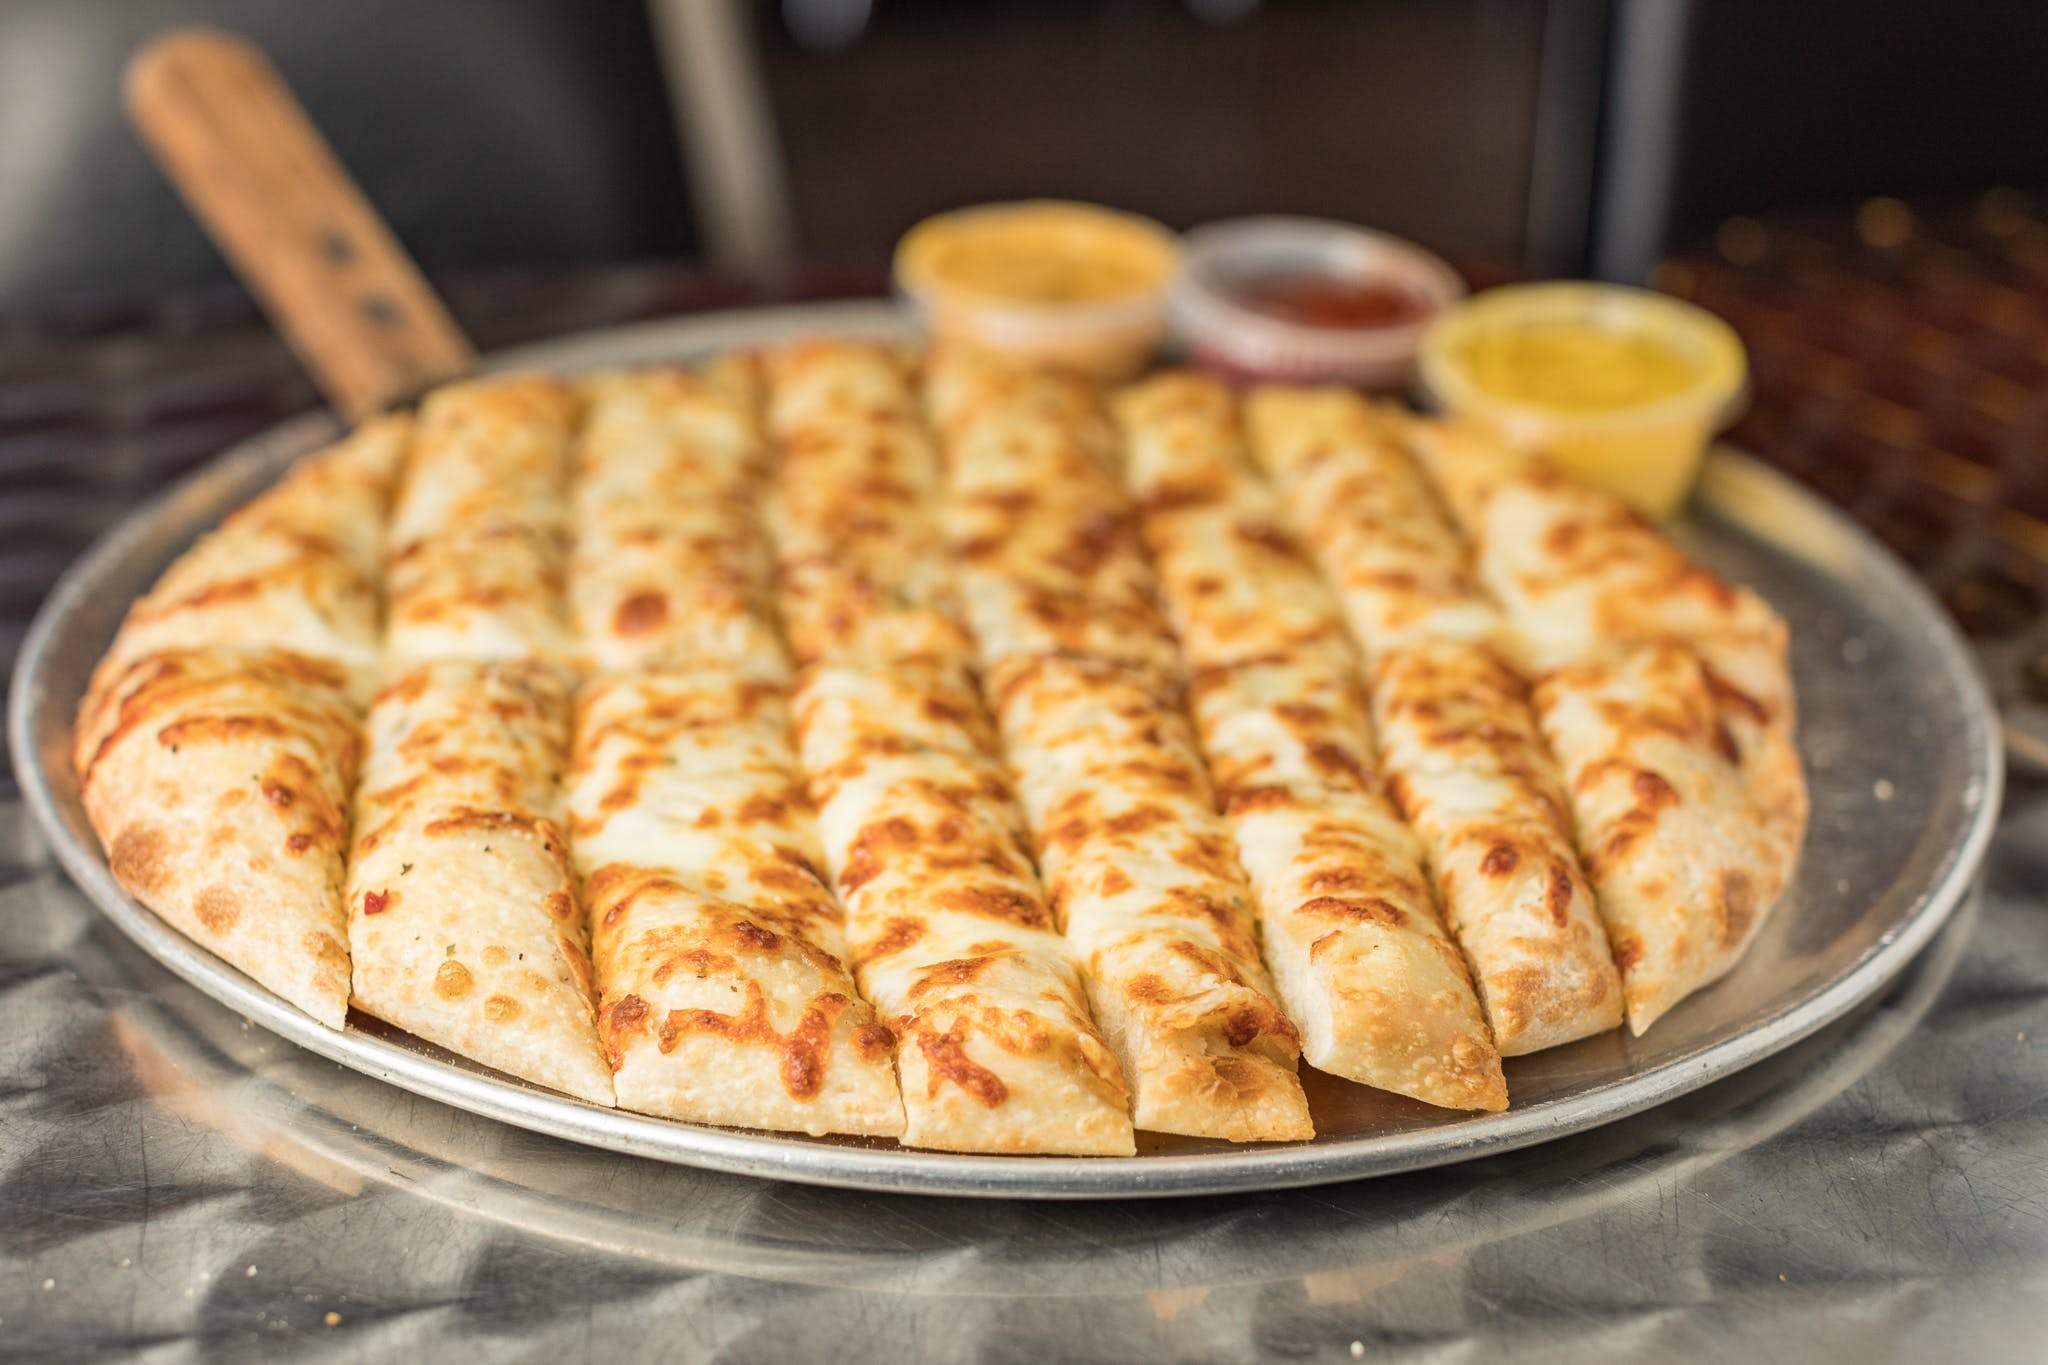 Smotherella Sticks from Jim Bob's Pizza - Eau Claire in Eau Claire, WI